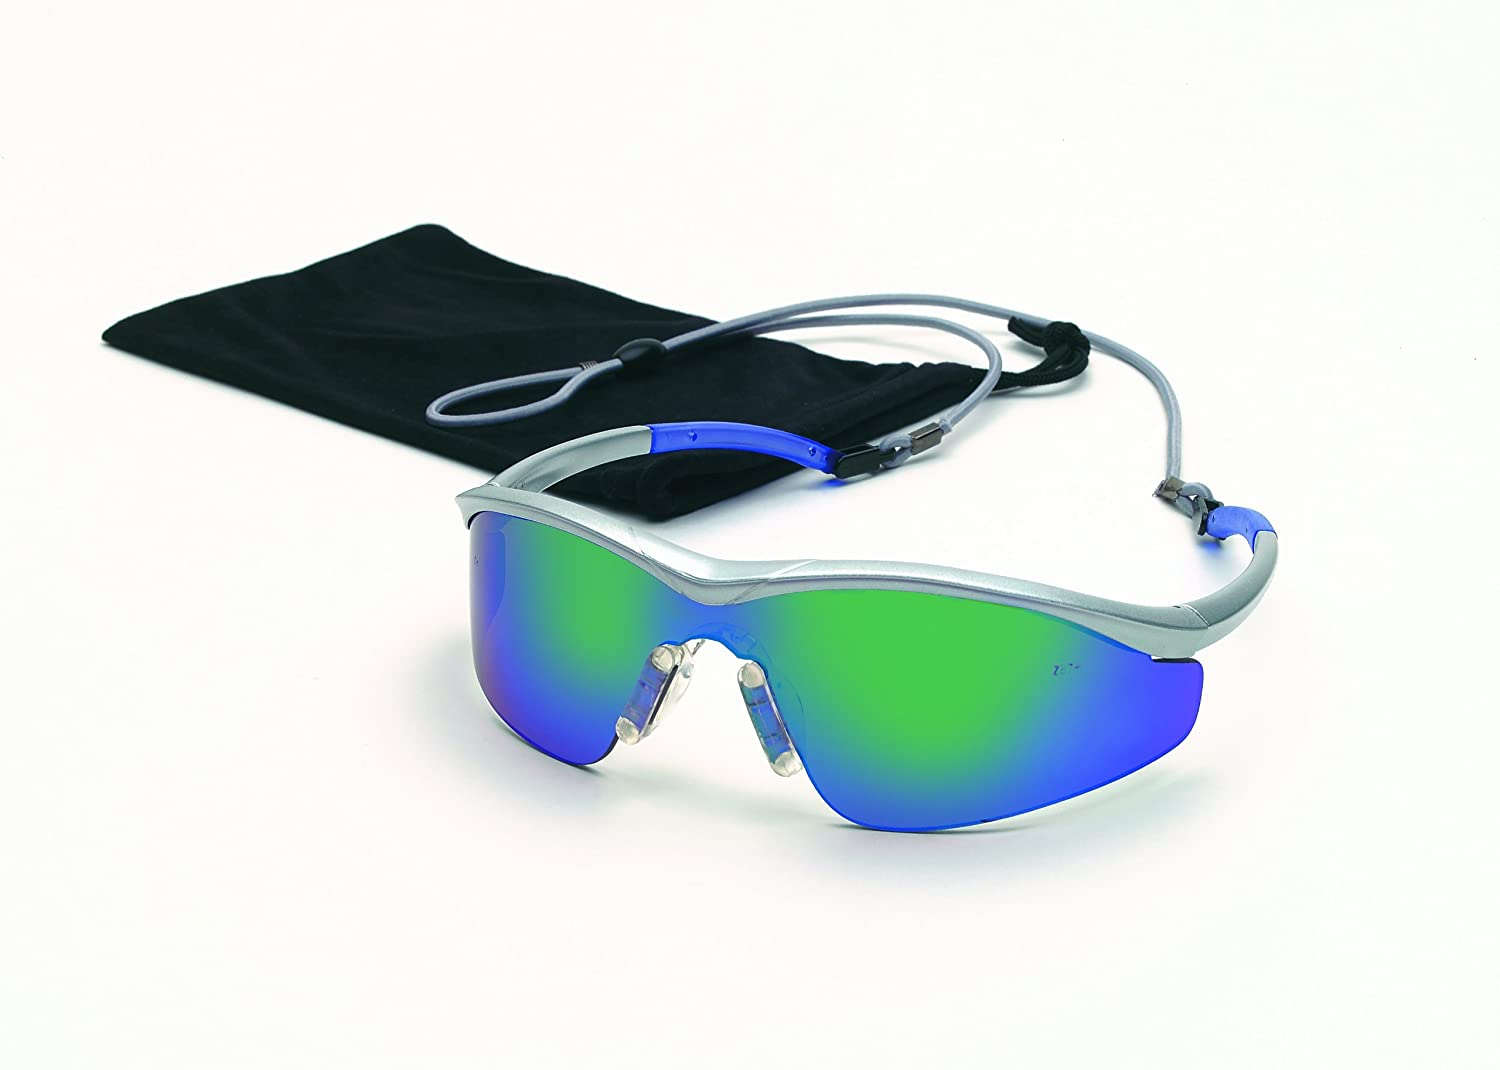 MCR Safety T114G Triwear T1 Hybrid Temple Design Safety Glasses with Steel Frame and Emerald Mirror Lens